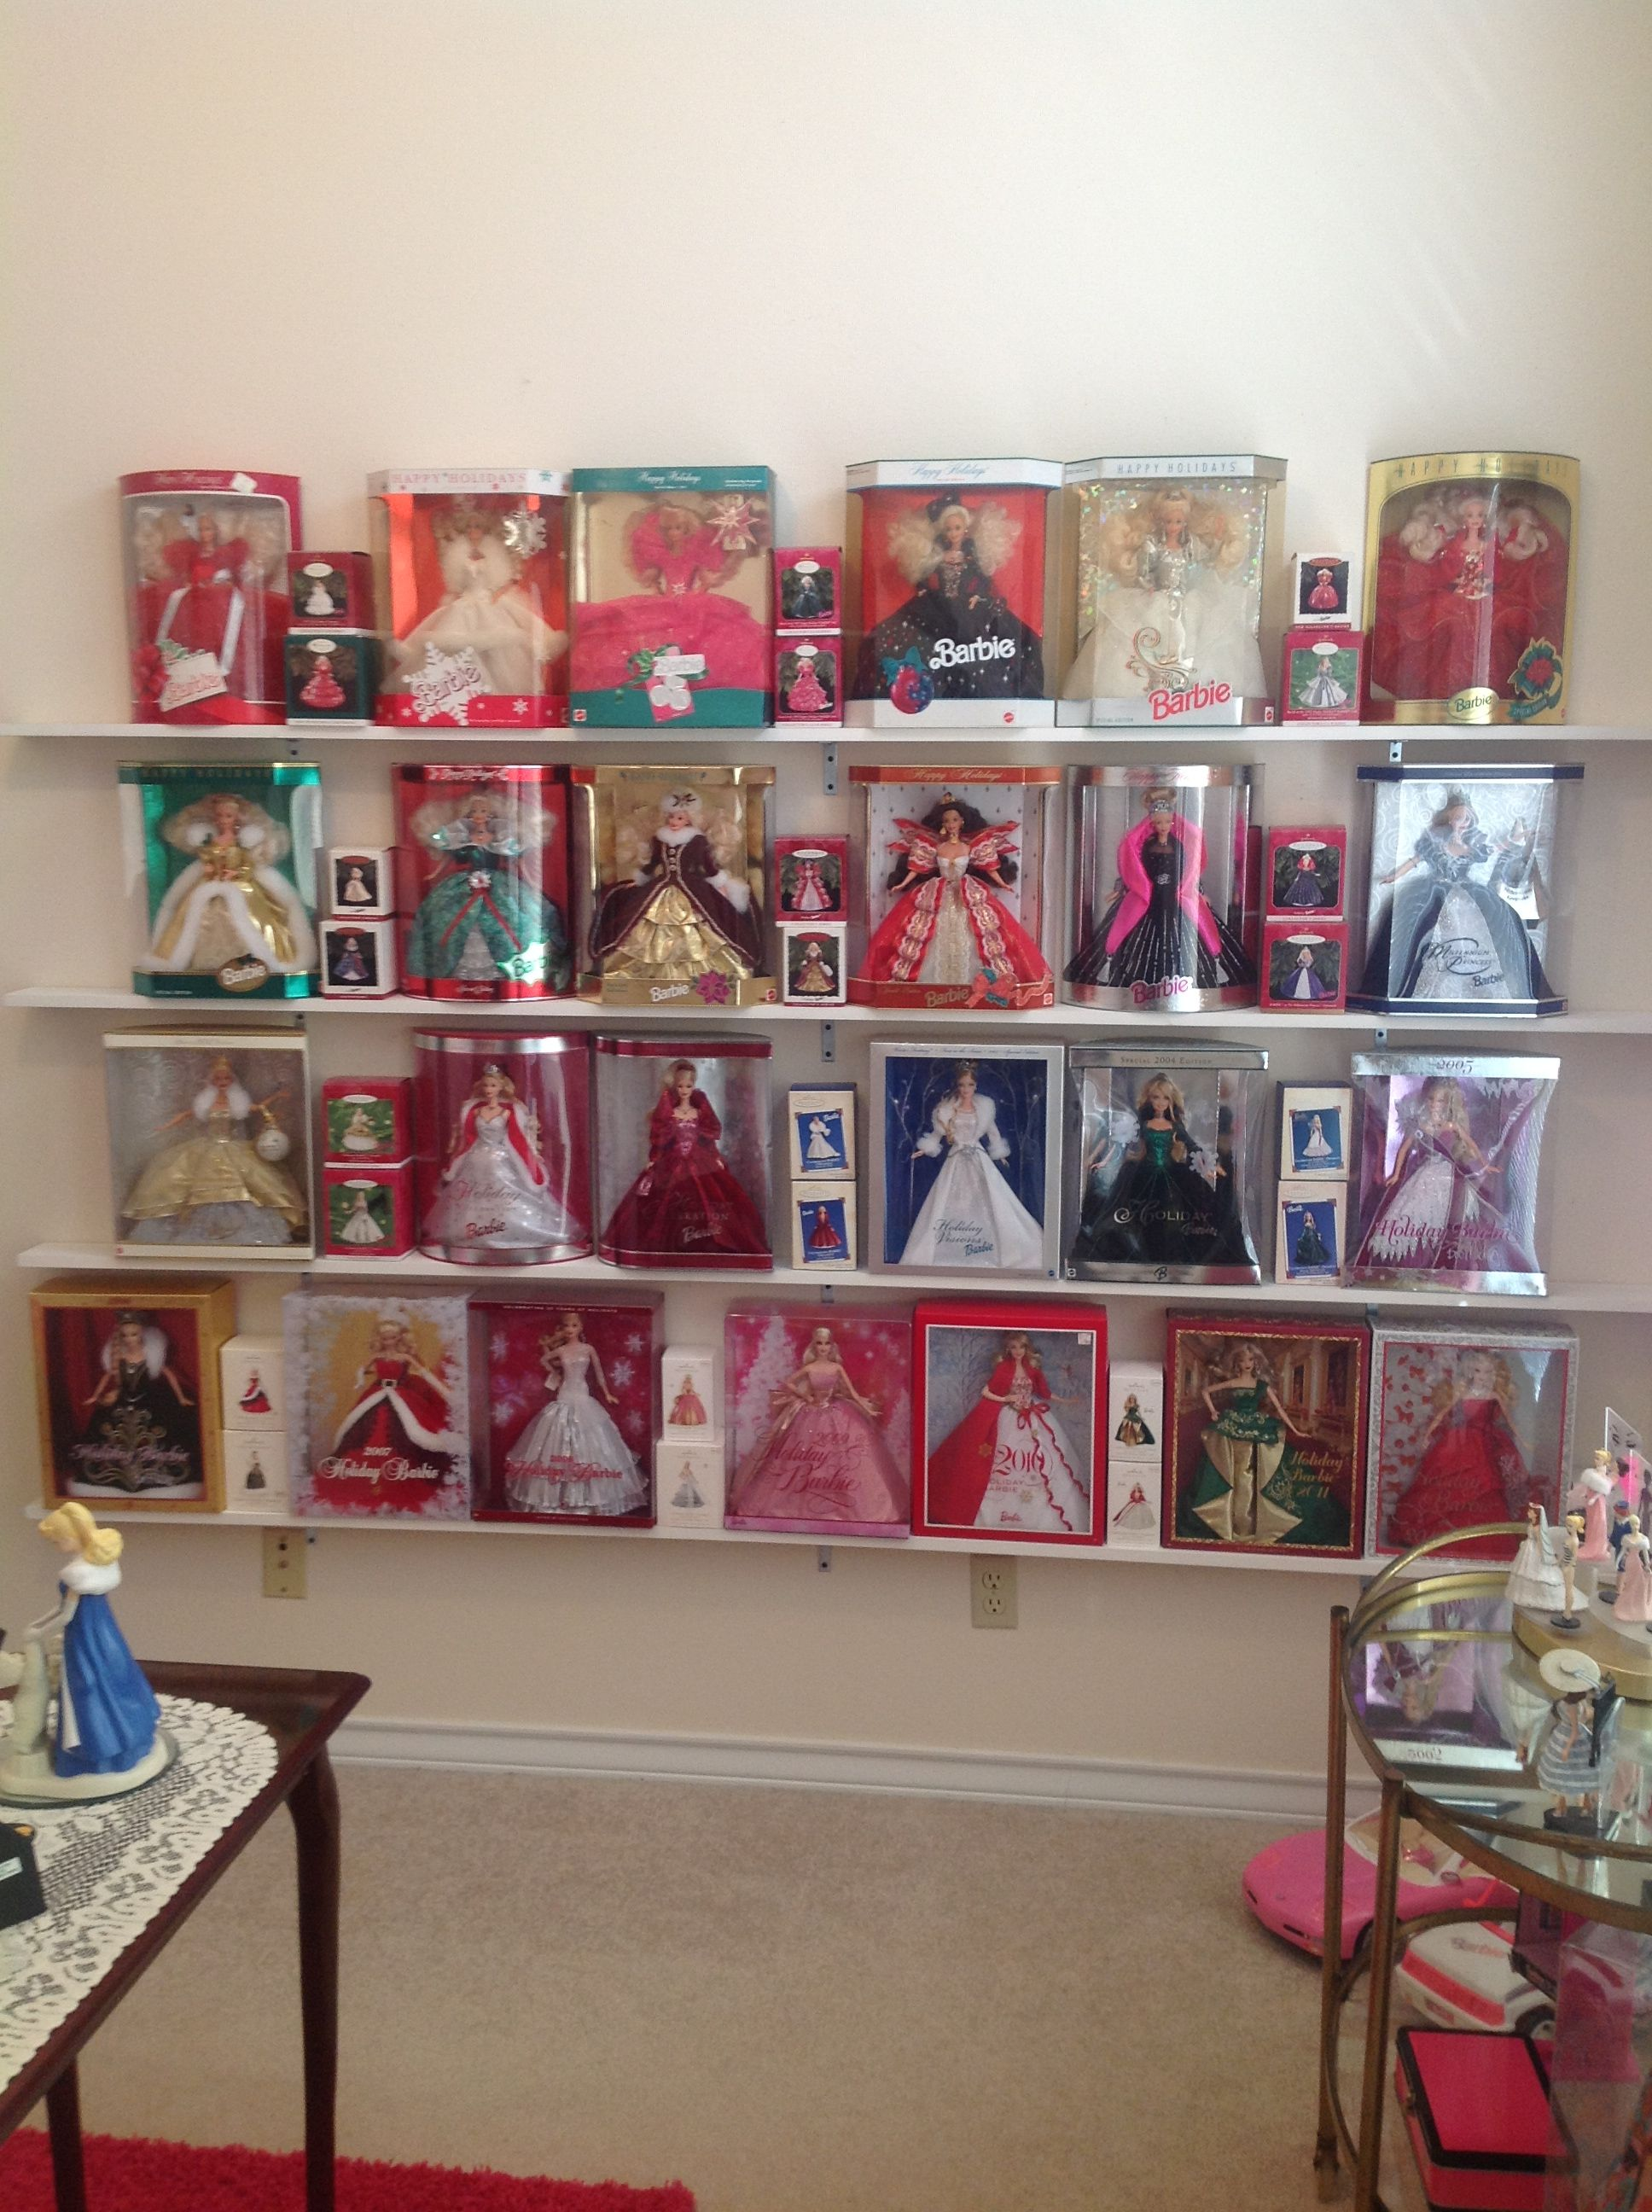 Barbie Bedroom In A Box: My Holiday Barbie Collection With All The Hallmark